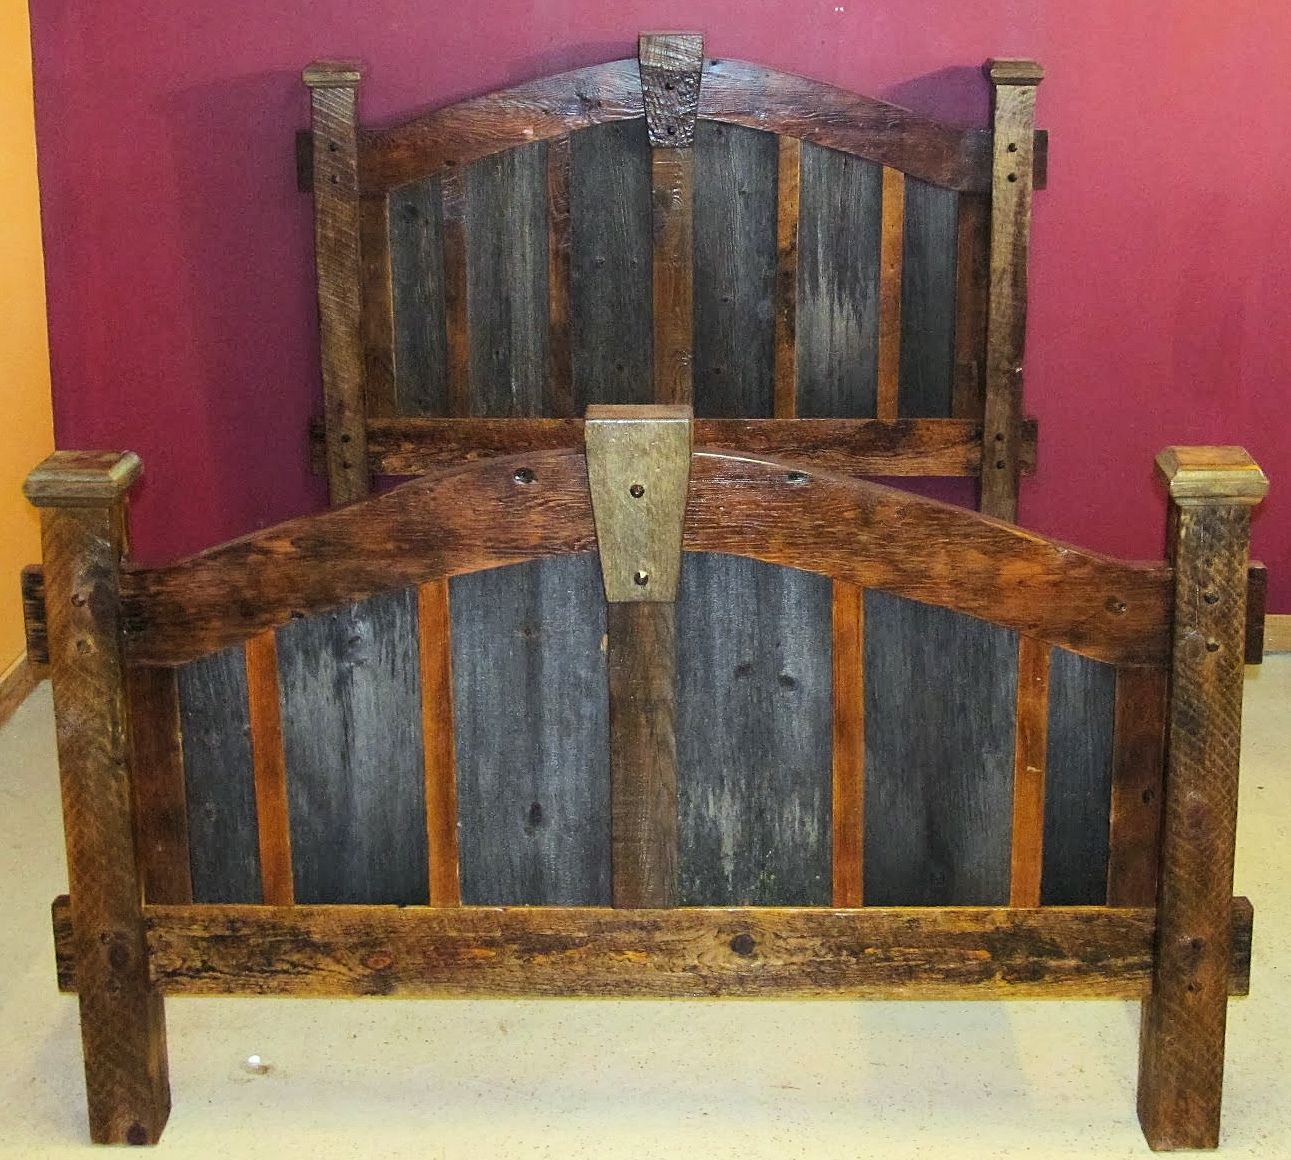 Bedroom — Barn Wood Furniture - Rustic Barnwood and Log Furniture ...